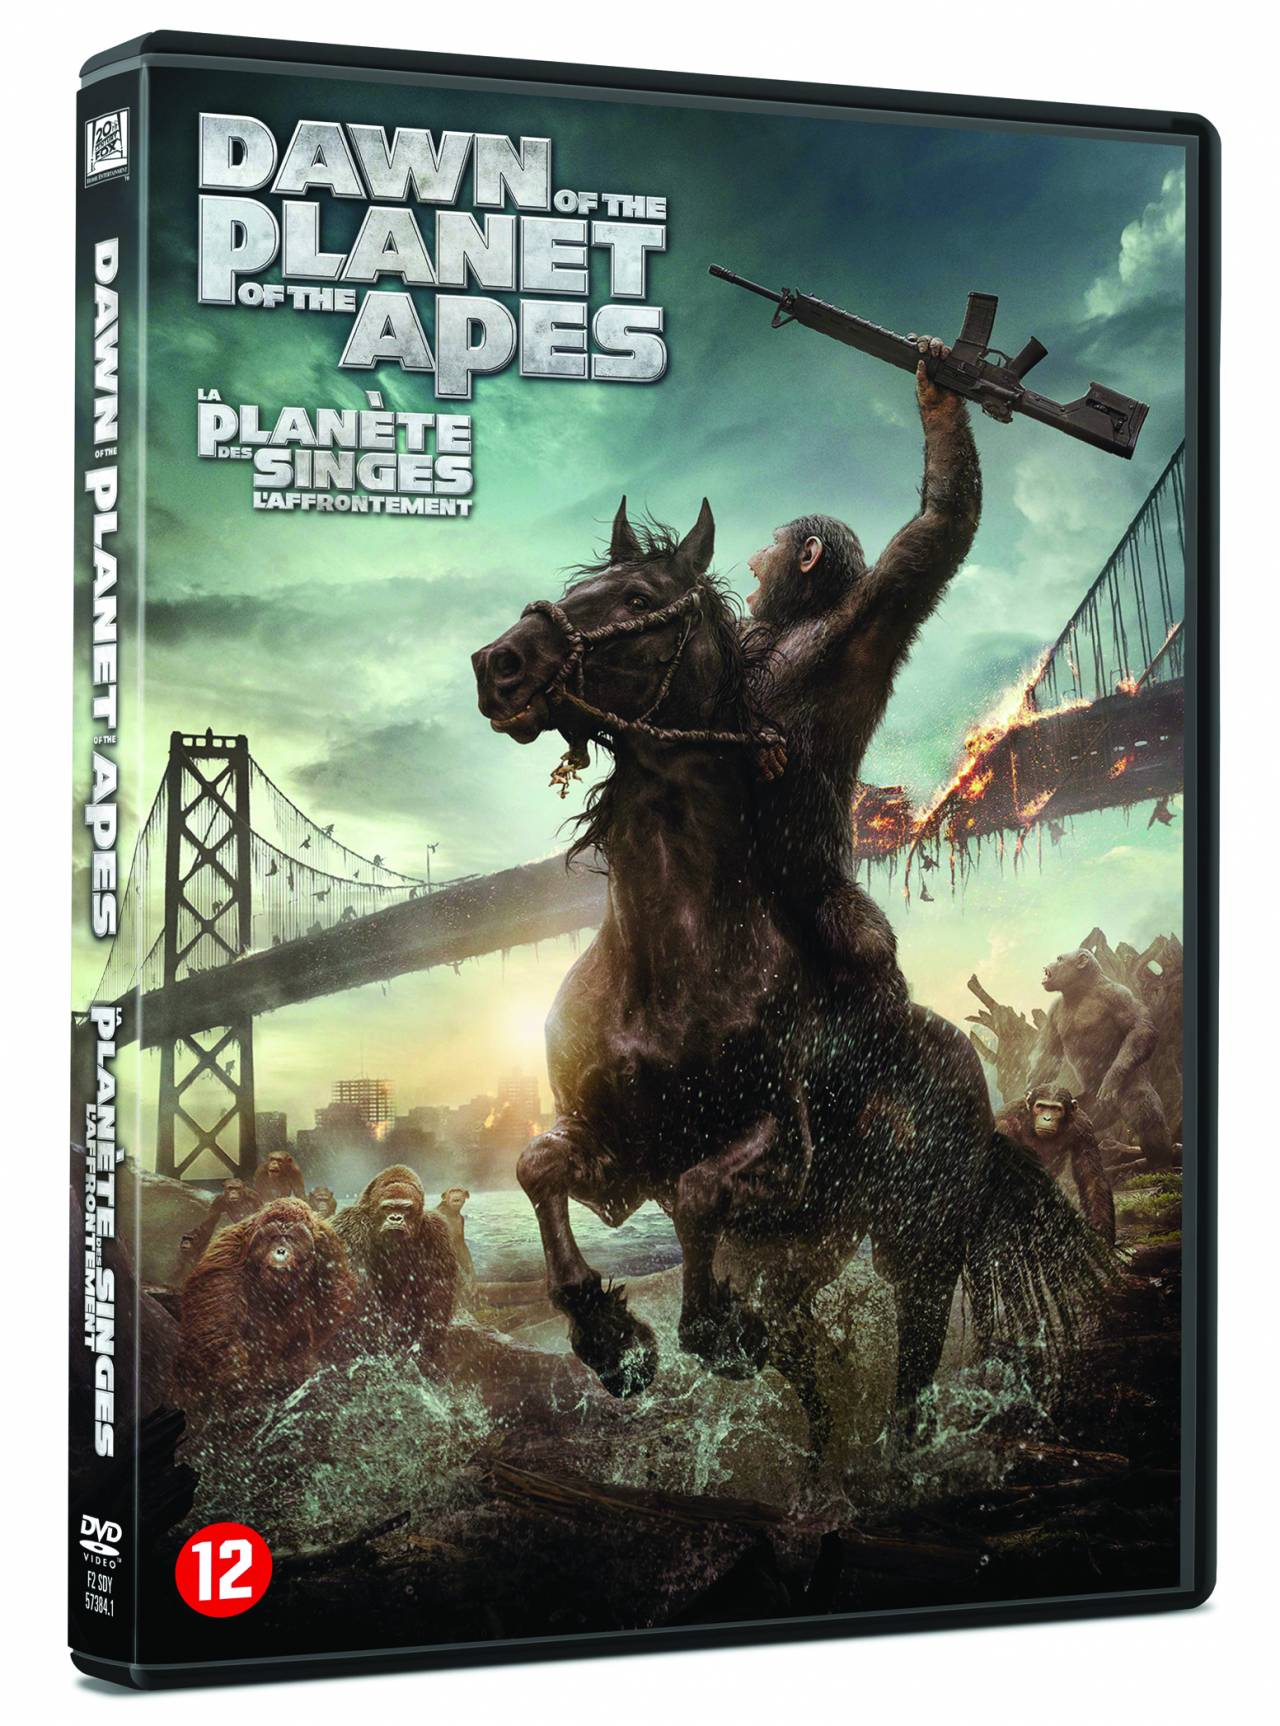 dawn-of-the-planet-of-the-apes-DVD